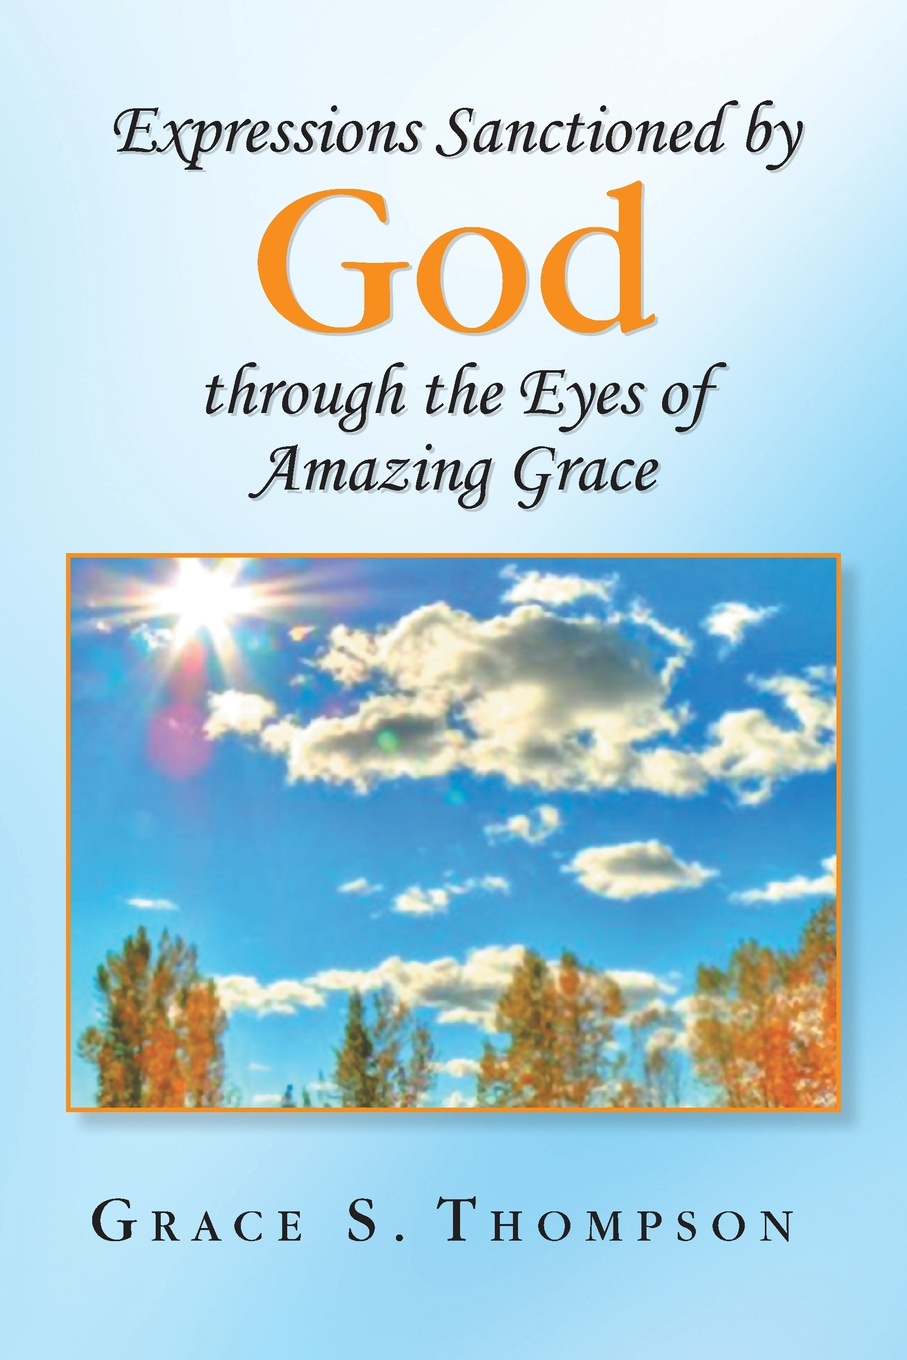 Grace S. Thompson Expressions Sanctioned by God Through the Eyes of Amazing Grace me and my army me and my army thank god for sending demons